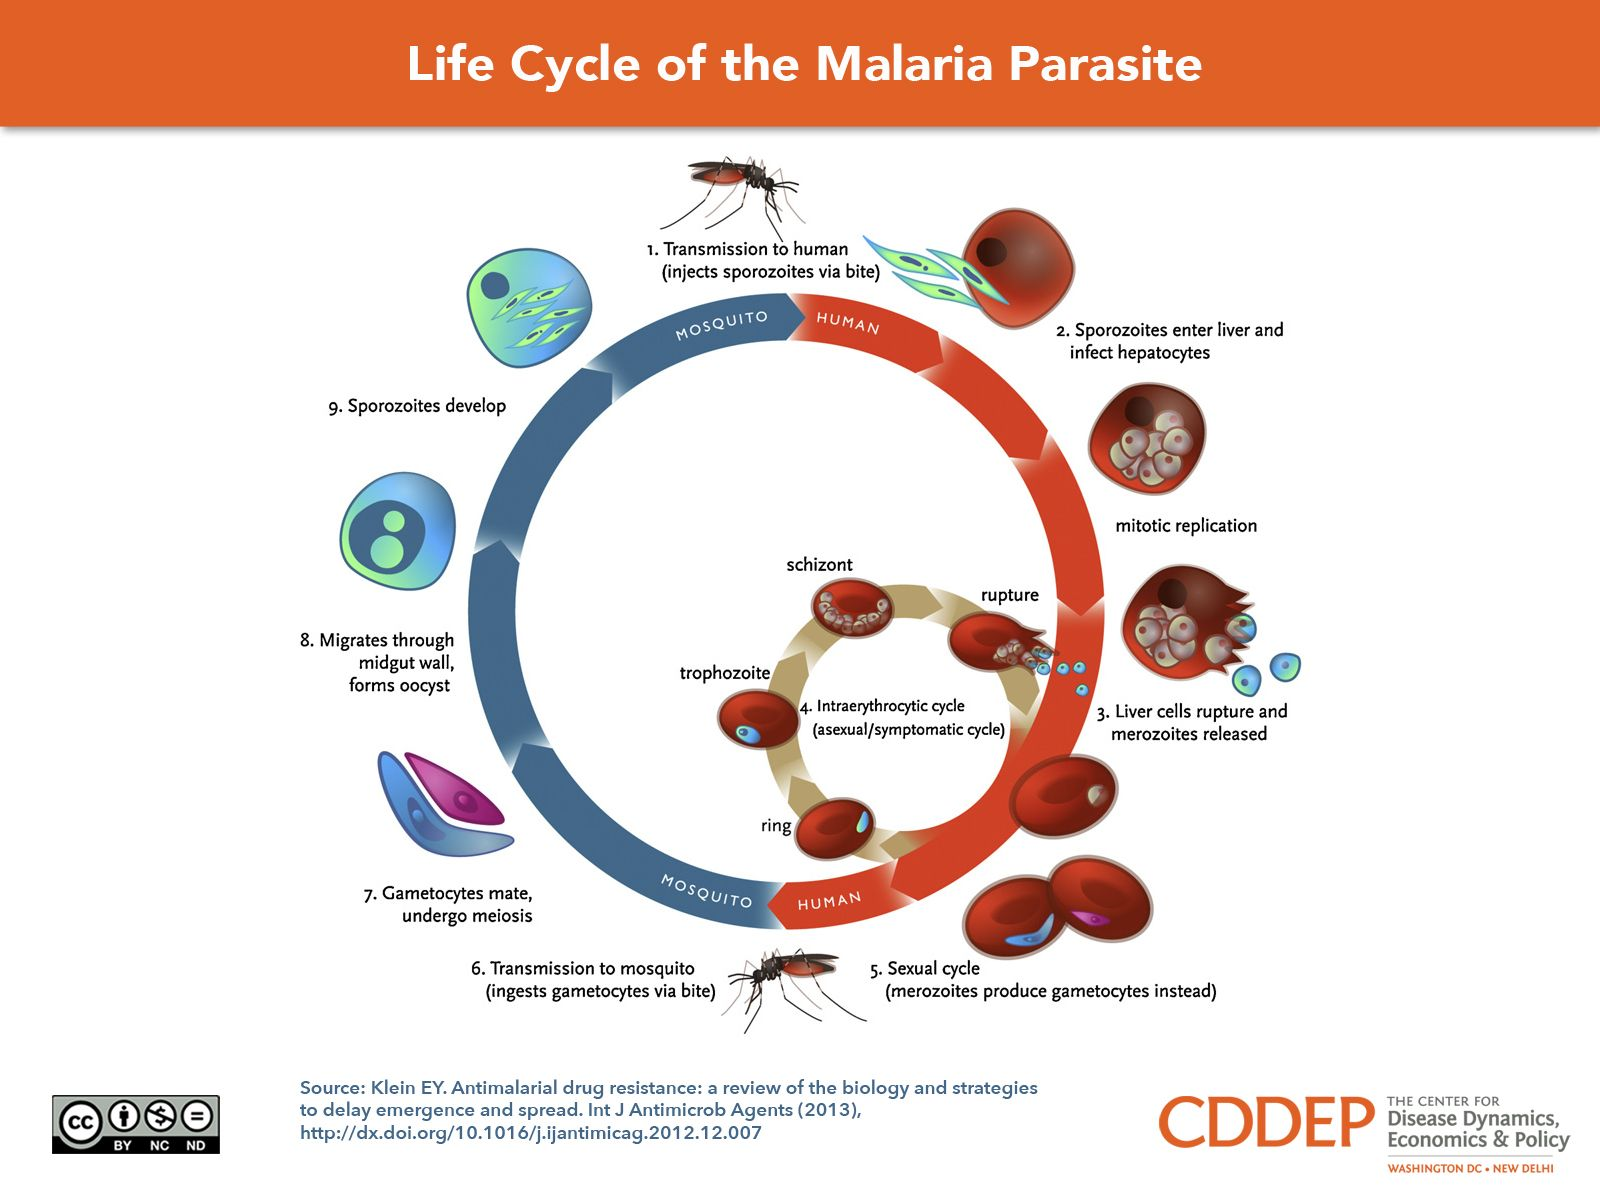 17 best images about malaria advocacy resources 17 best images about malaria advocacy resources malaria disease africa and surveillance system